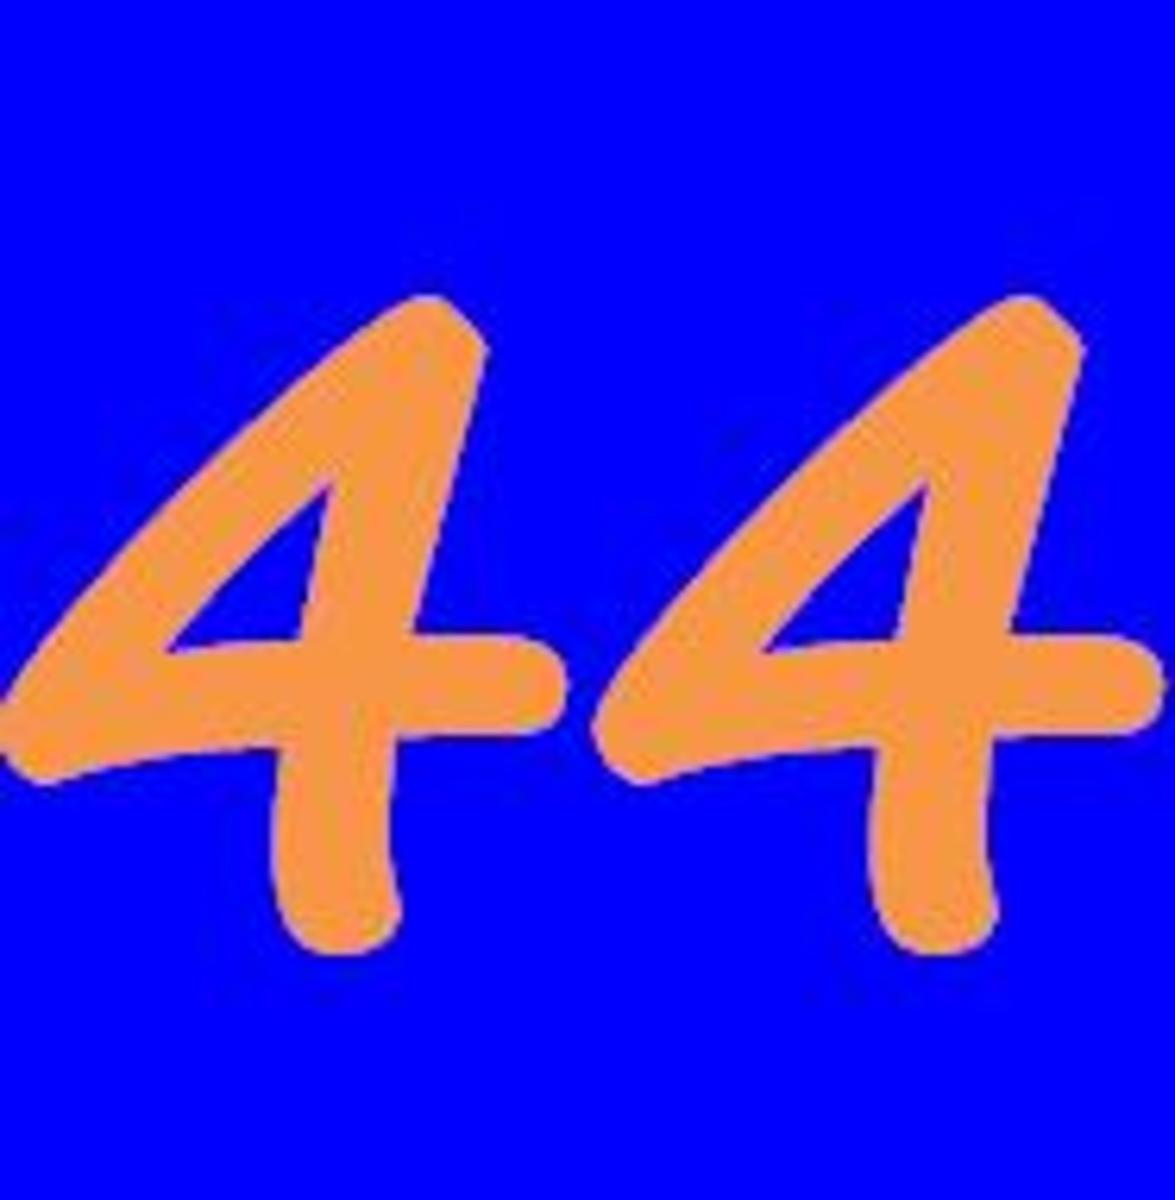 math-facts-about-the-number-44-plus-other-fun-facts-about-forty-four